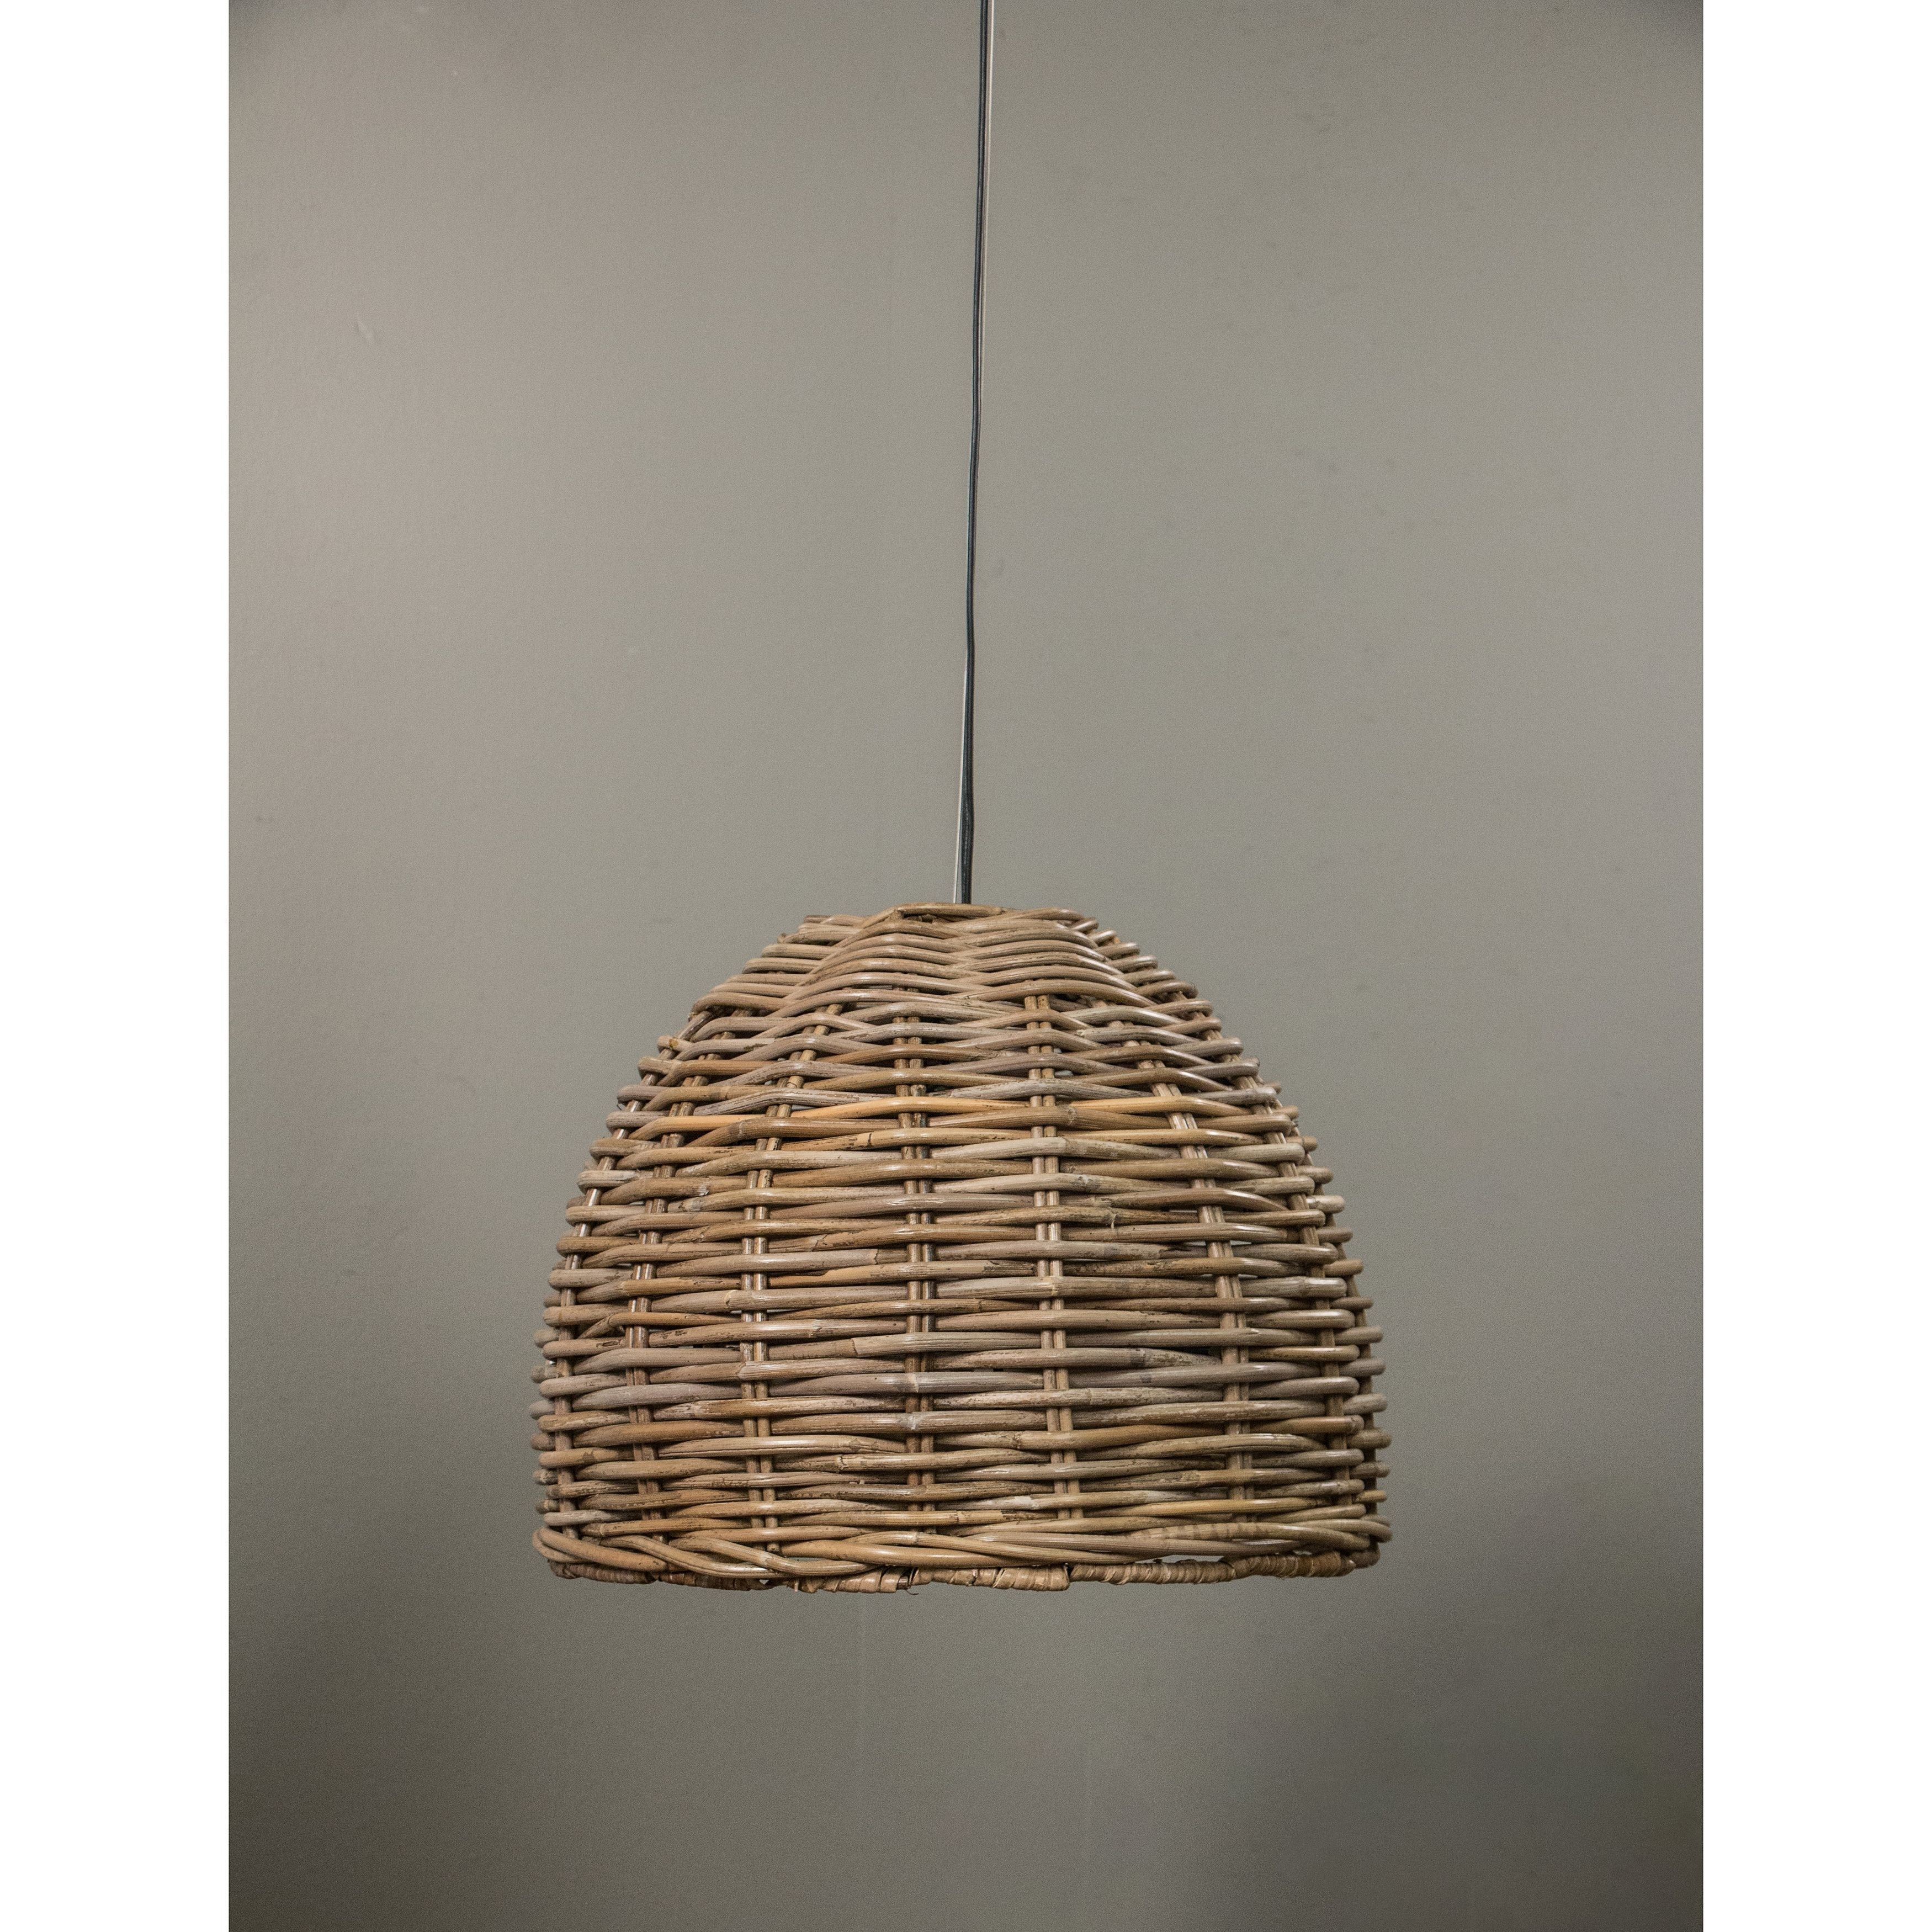 Our Dawson Hanging Lamp Is Made With The Natural Material, Rattan Regarding Outdoor Hanging Wicker Lights (View 11 of 15)